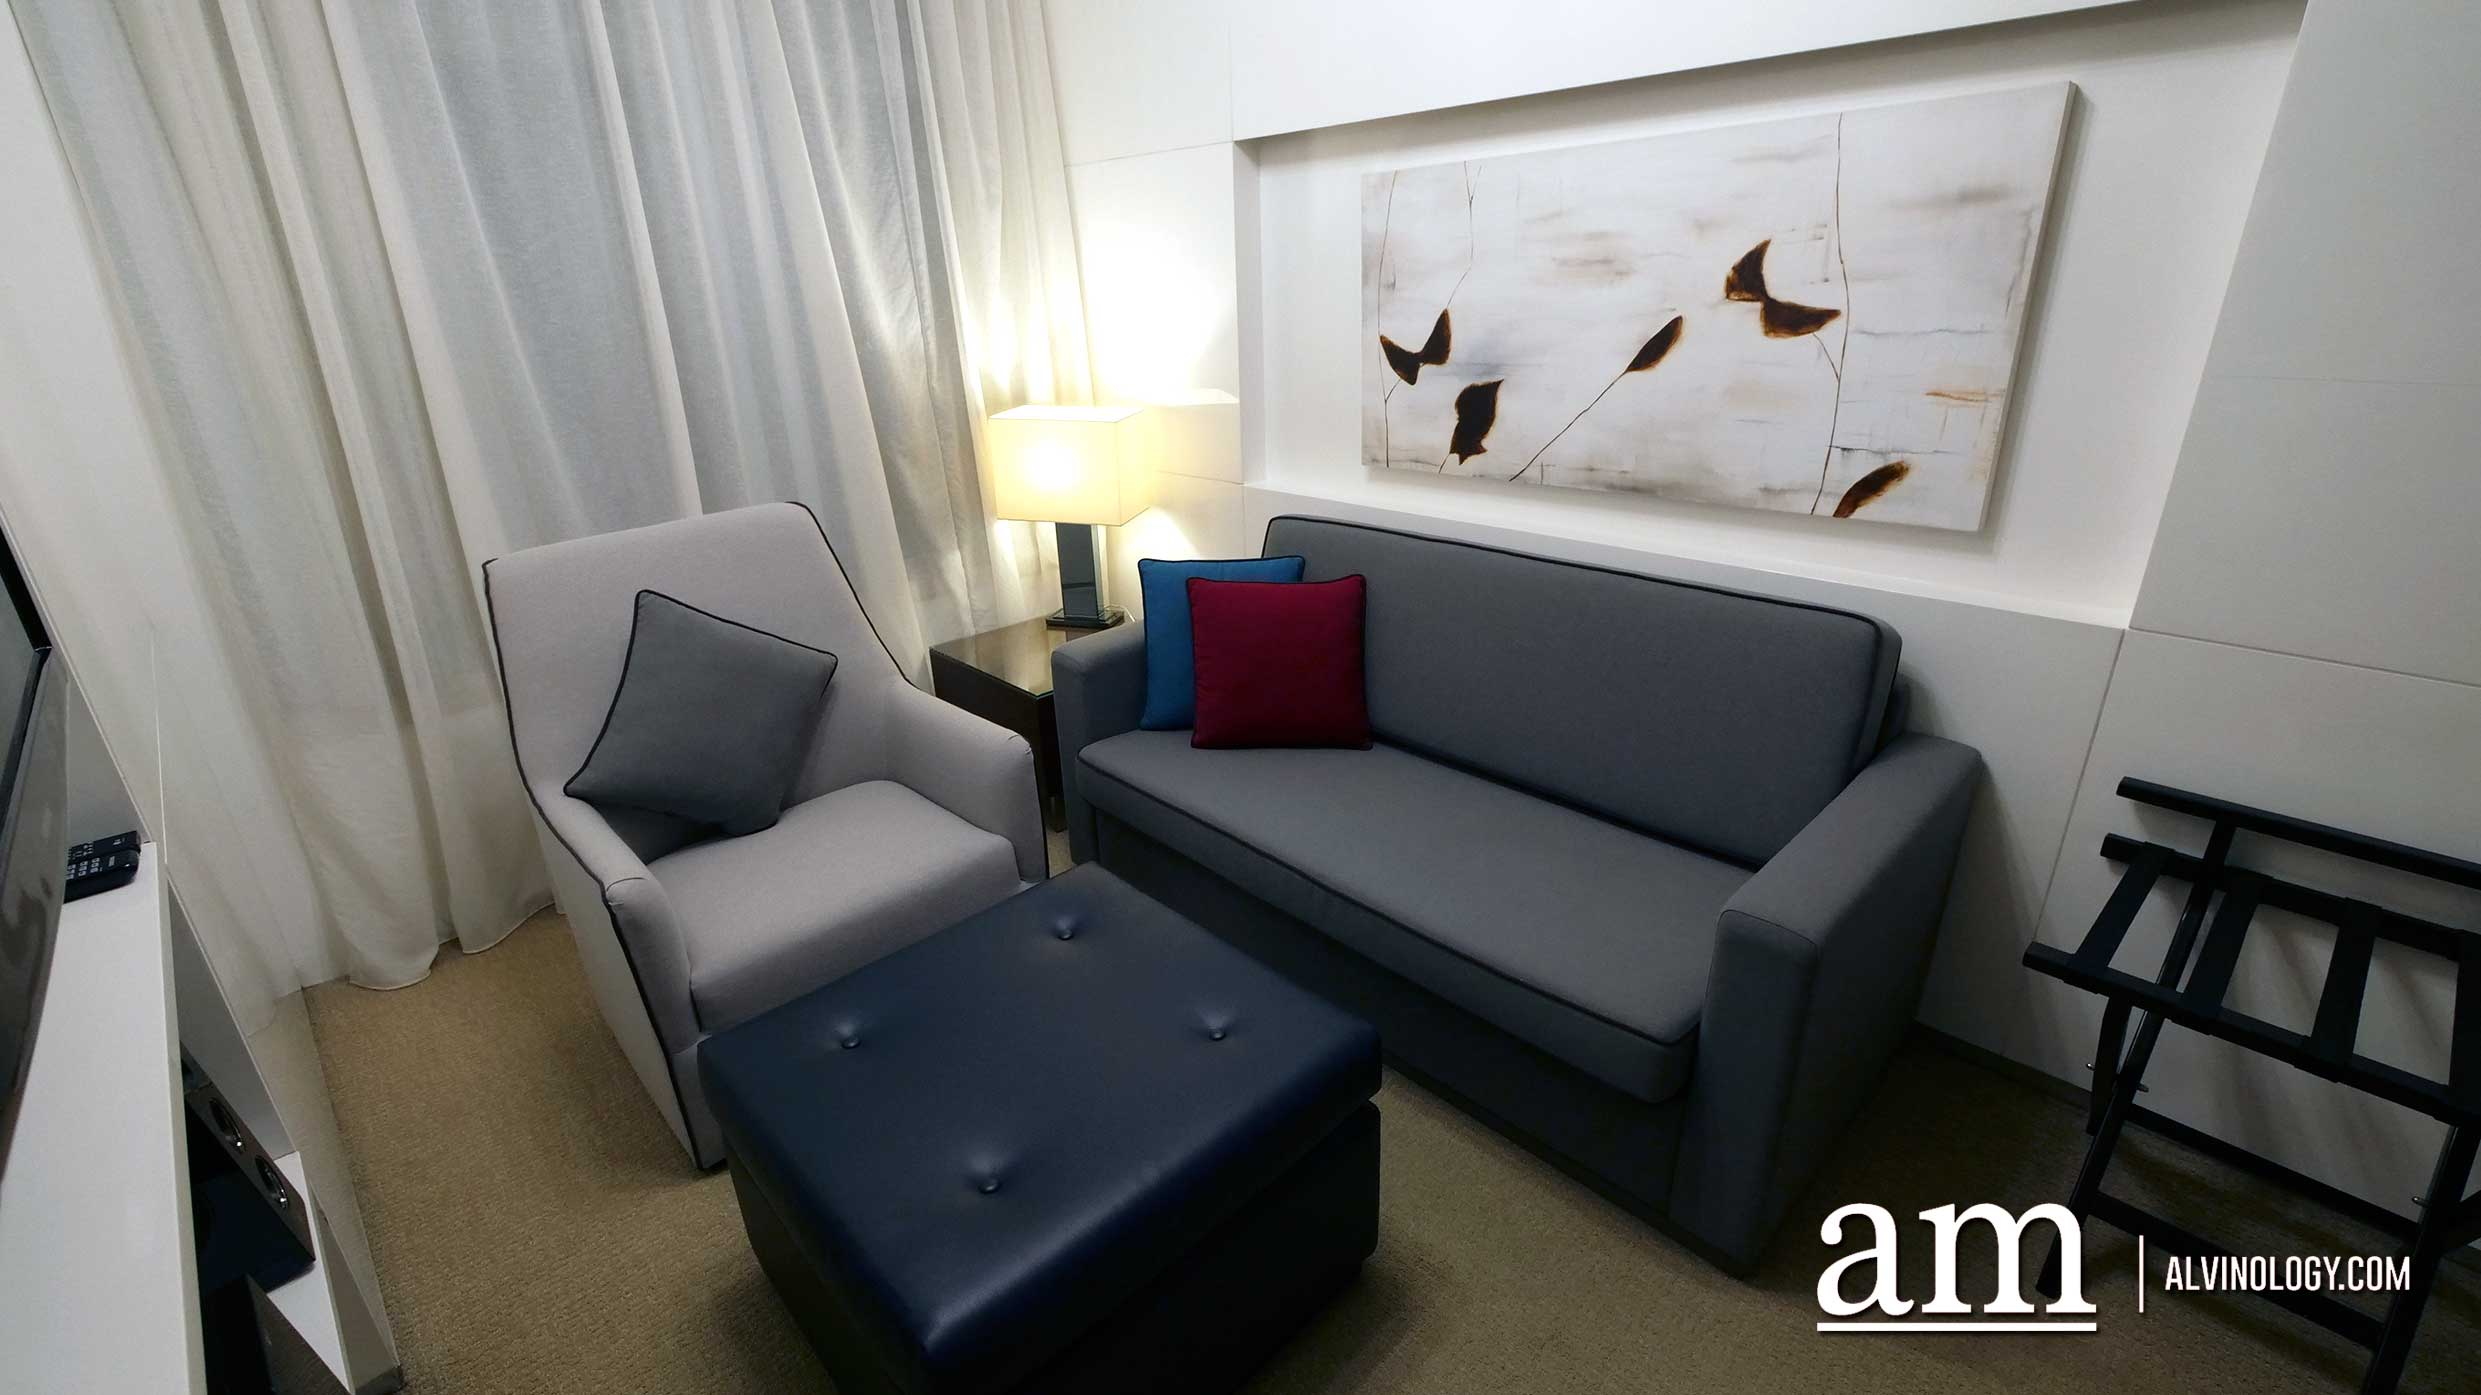 Do you know there are serviced apartments inside Grand Copthorne Waterfront Hotel Singapore? - Alvinology